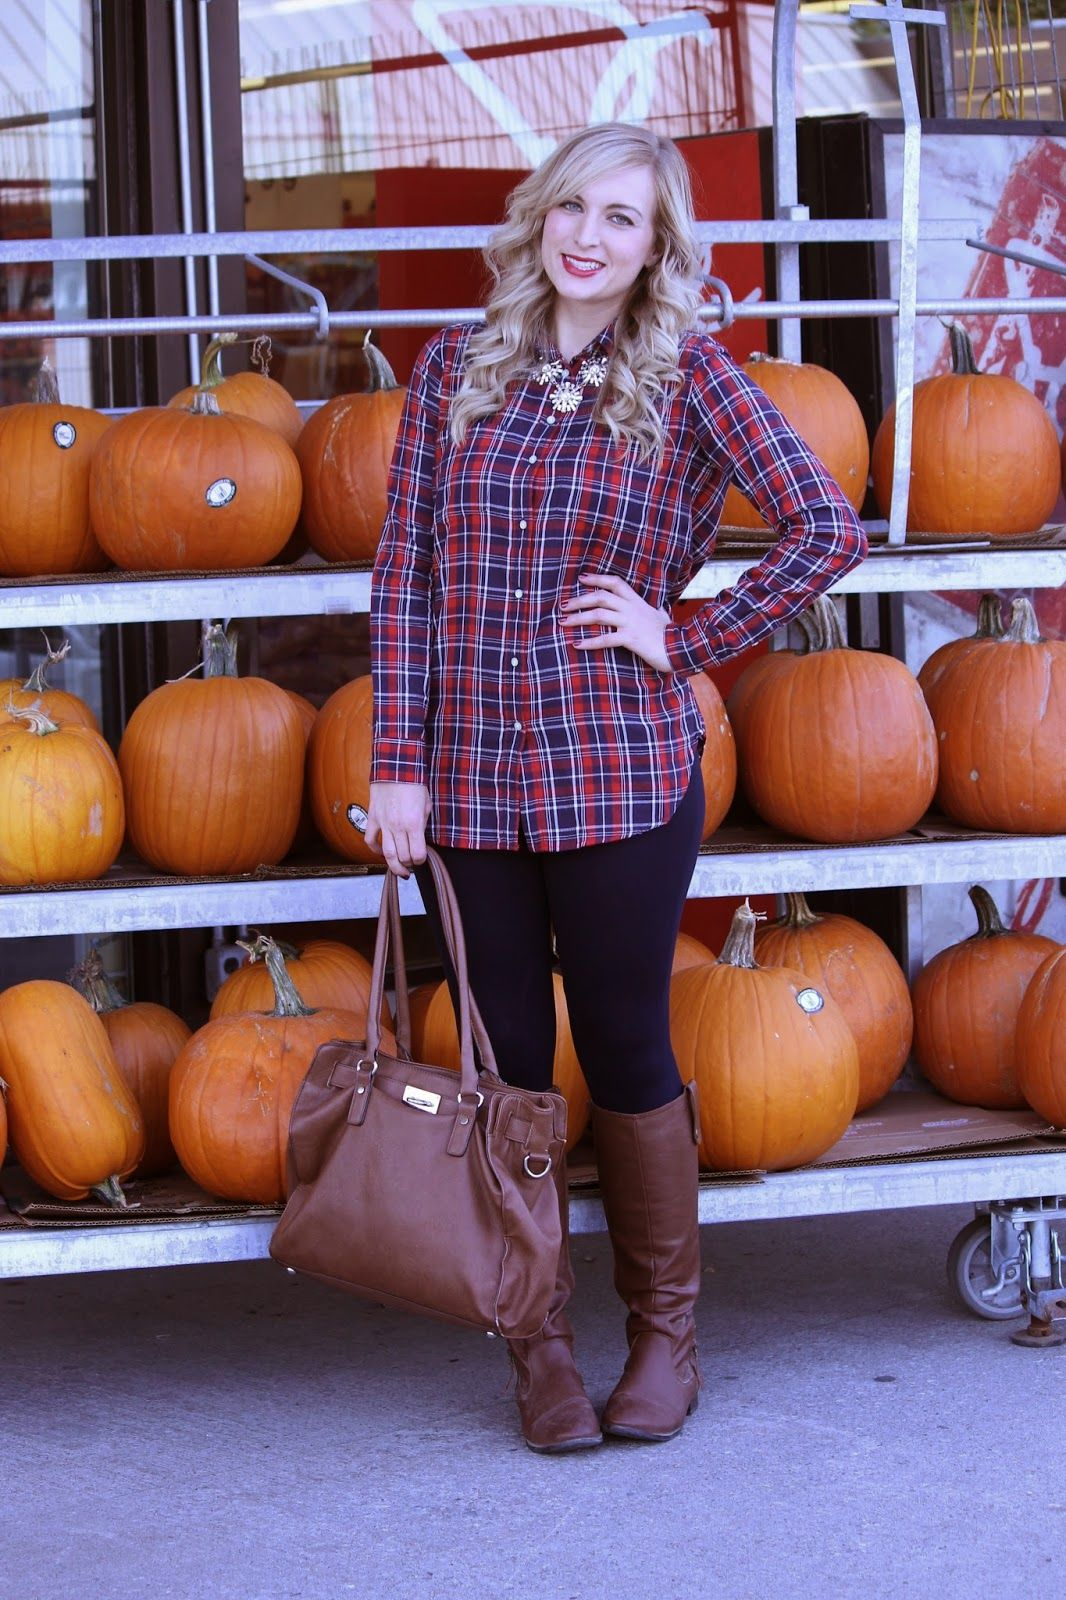 Casual Thanksgiving Outfit Ideas | Save the Pin and read the full post for more outfit ideas!